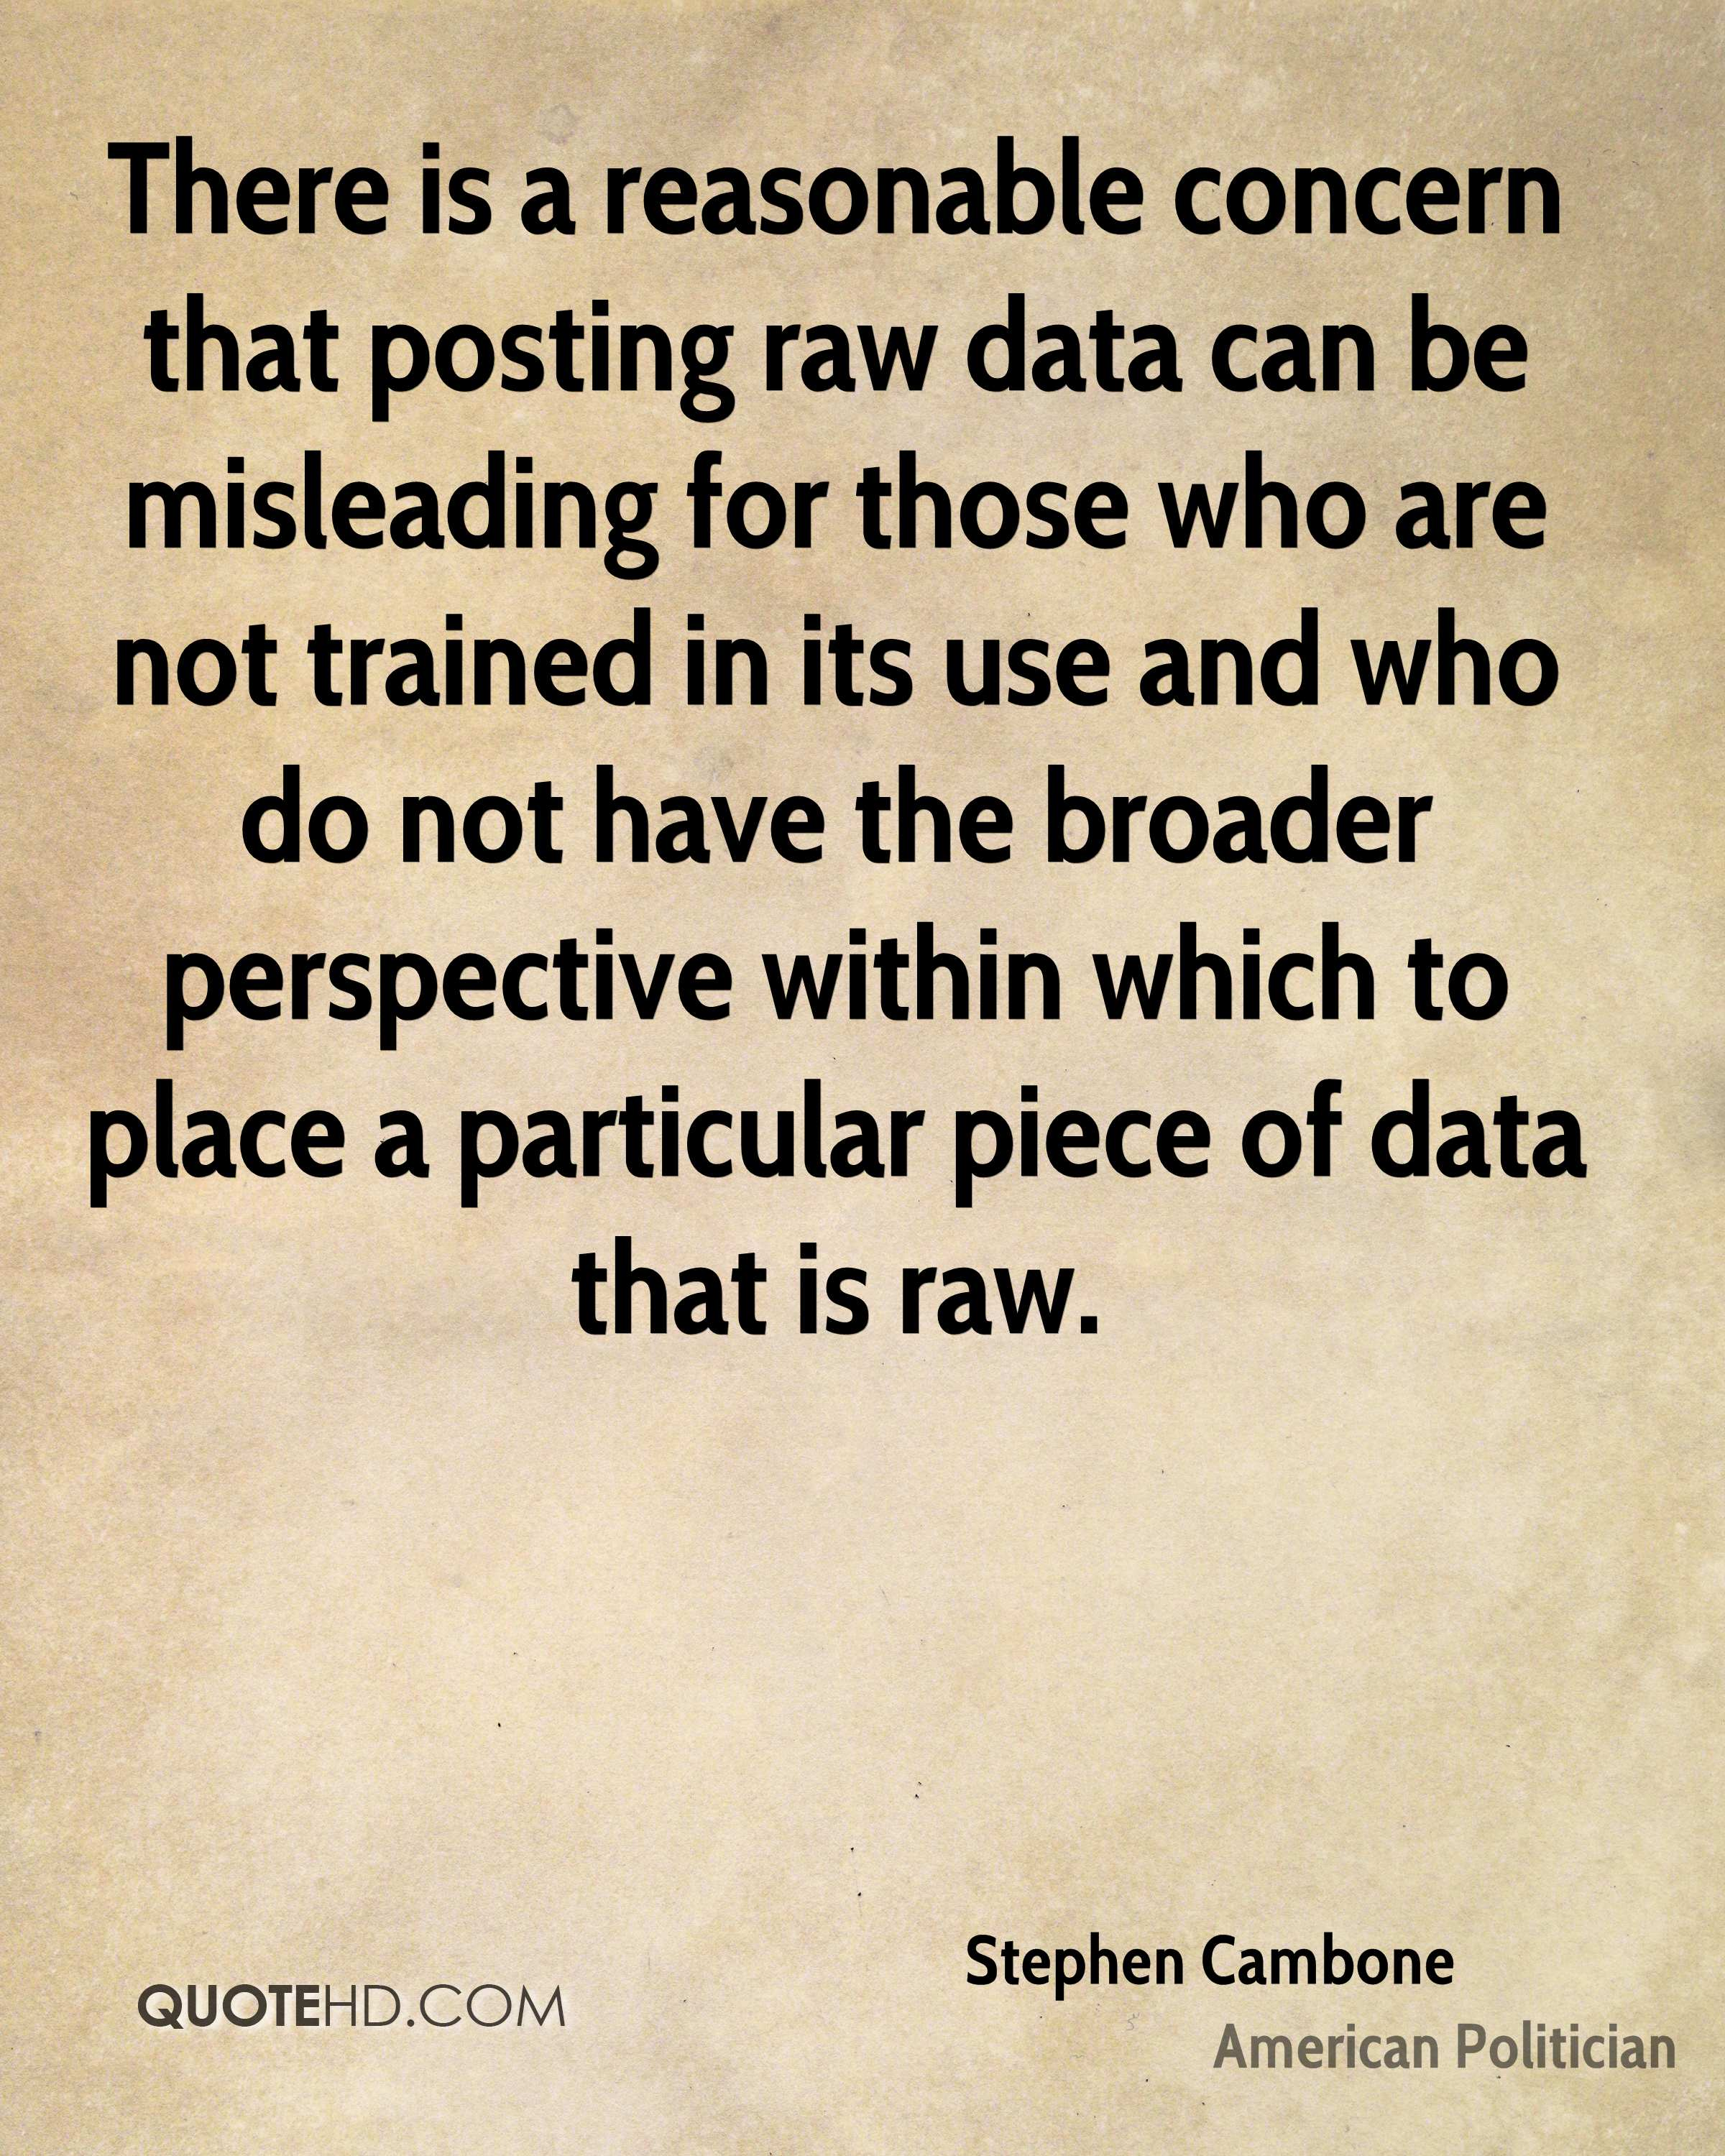 There is a reasonable concern that posting raw data can be misleading for those who are not trained in its use and who do not have the broader perspective within which to place a particular piece of data that is raw.